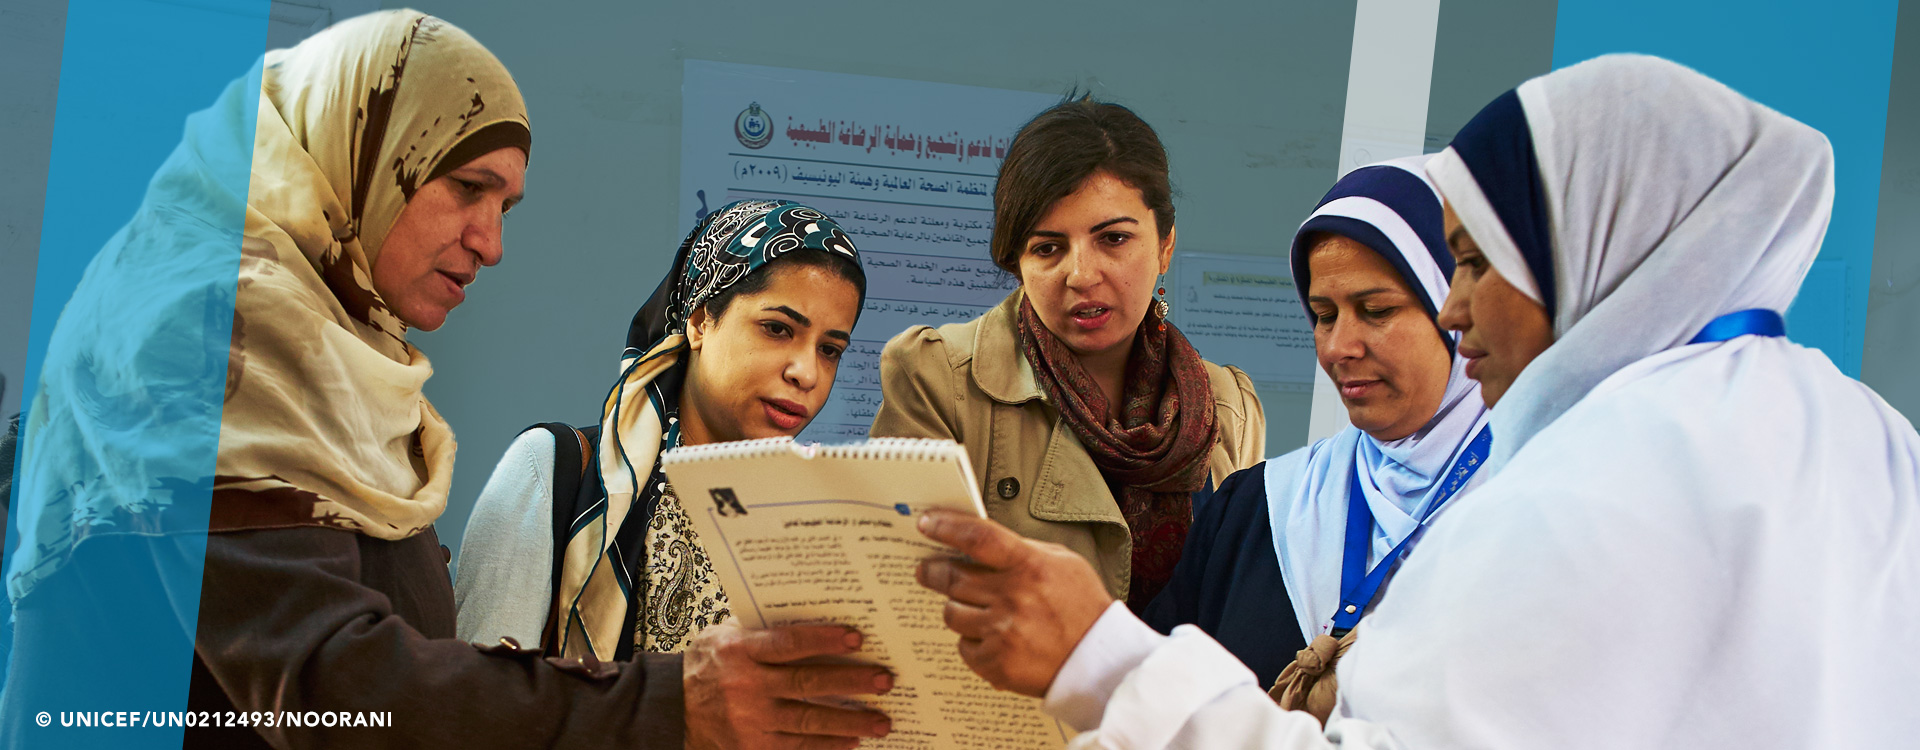 A group of women standing in a circle who appear to be a team reviewing document that they're holding in the middle of themselves. Copyright: UNICEF/UN0212493/NOORANI